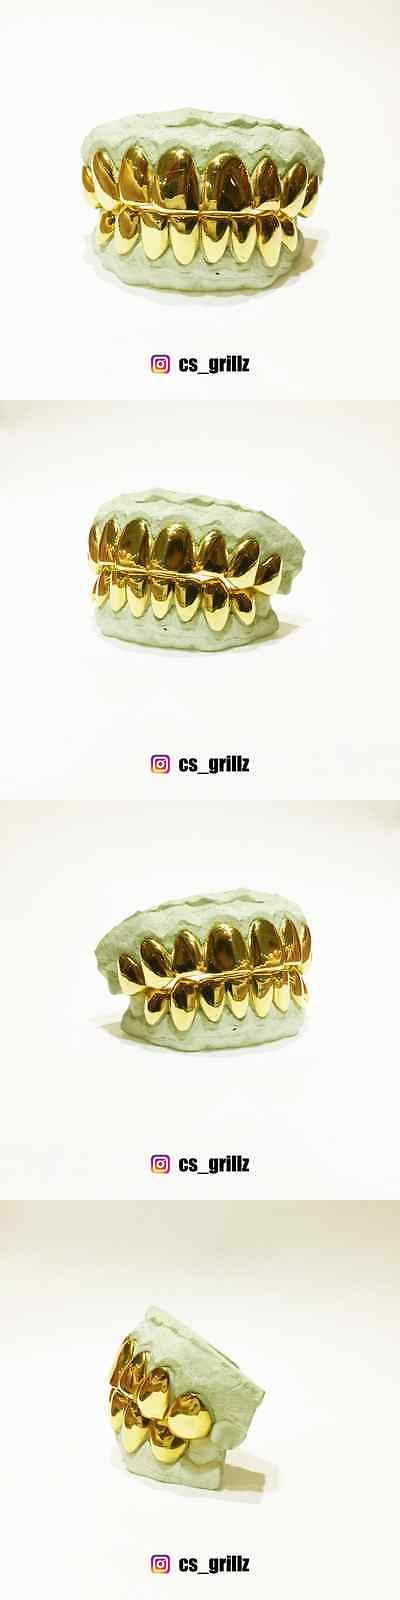 Grillz Dental Grills 152808: 10K Solid Yellow Gold Custom Fit Real Perm Cut Grill Gold Teeth Grillz. BUY IT NOW ONLY: $250.0